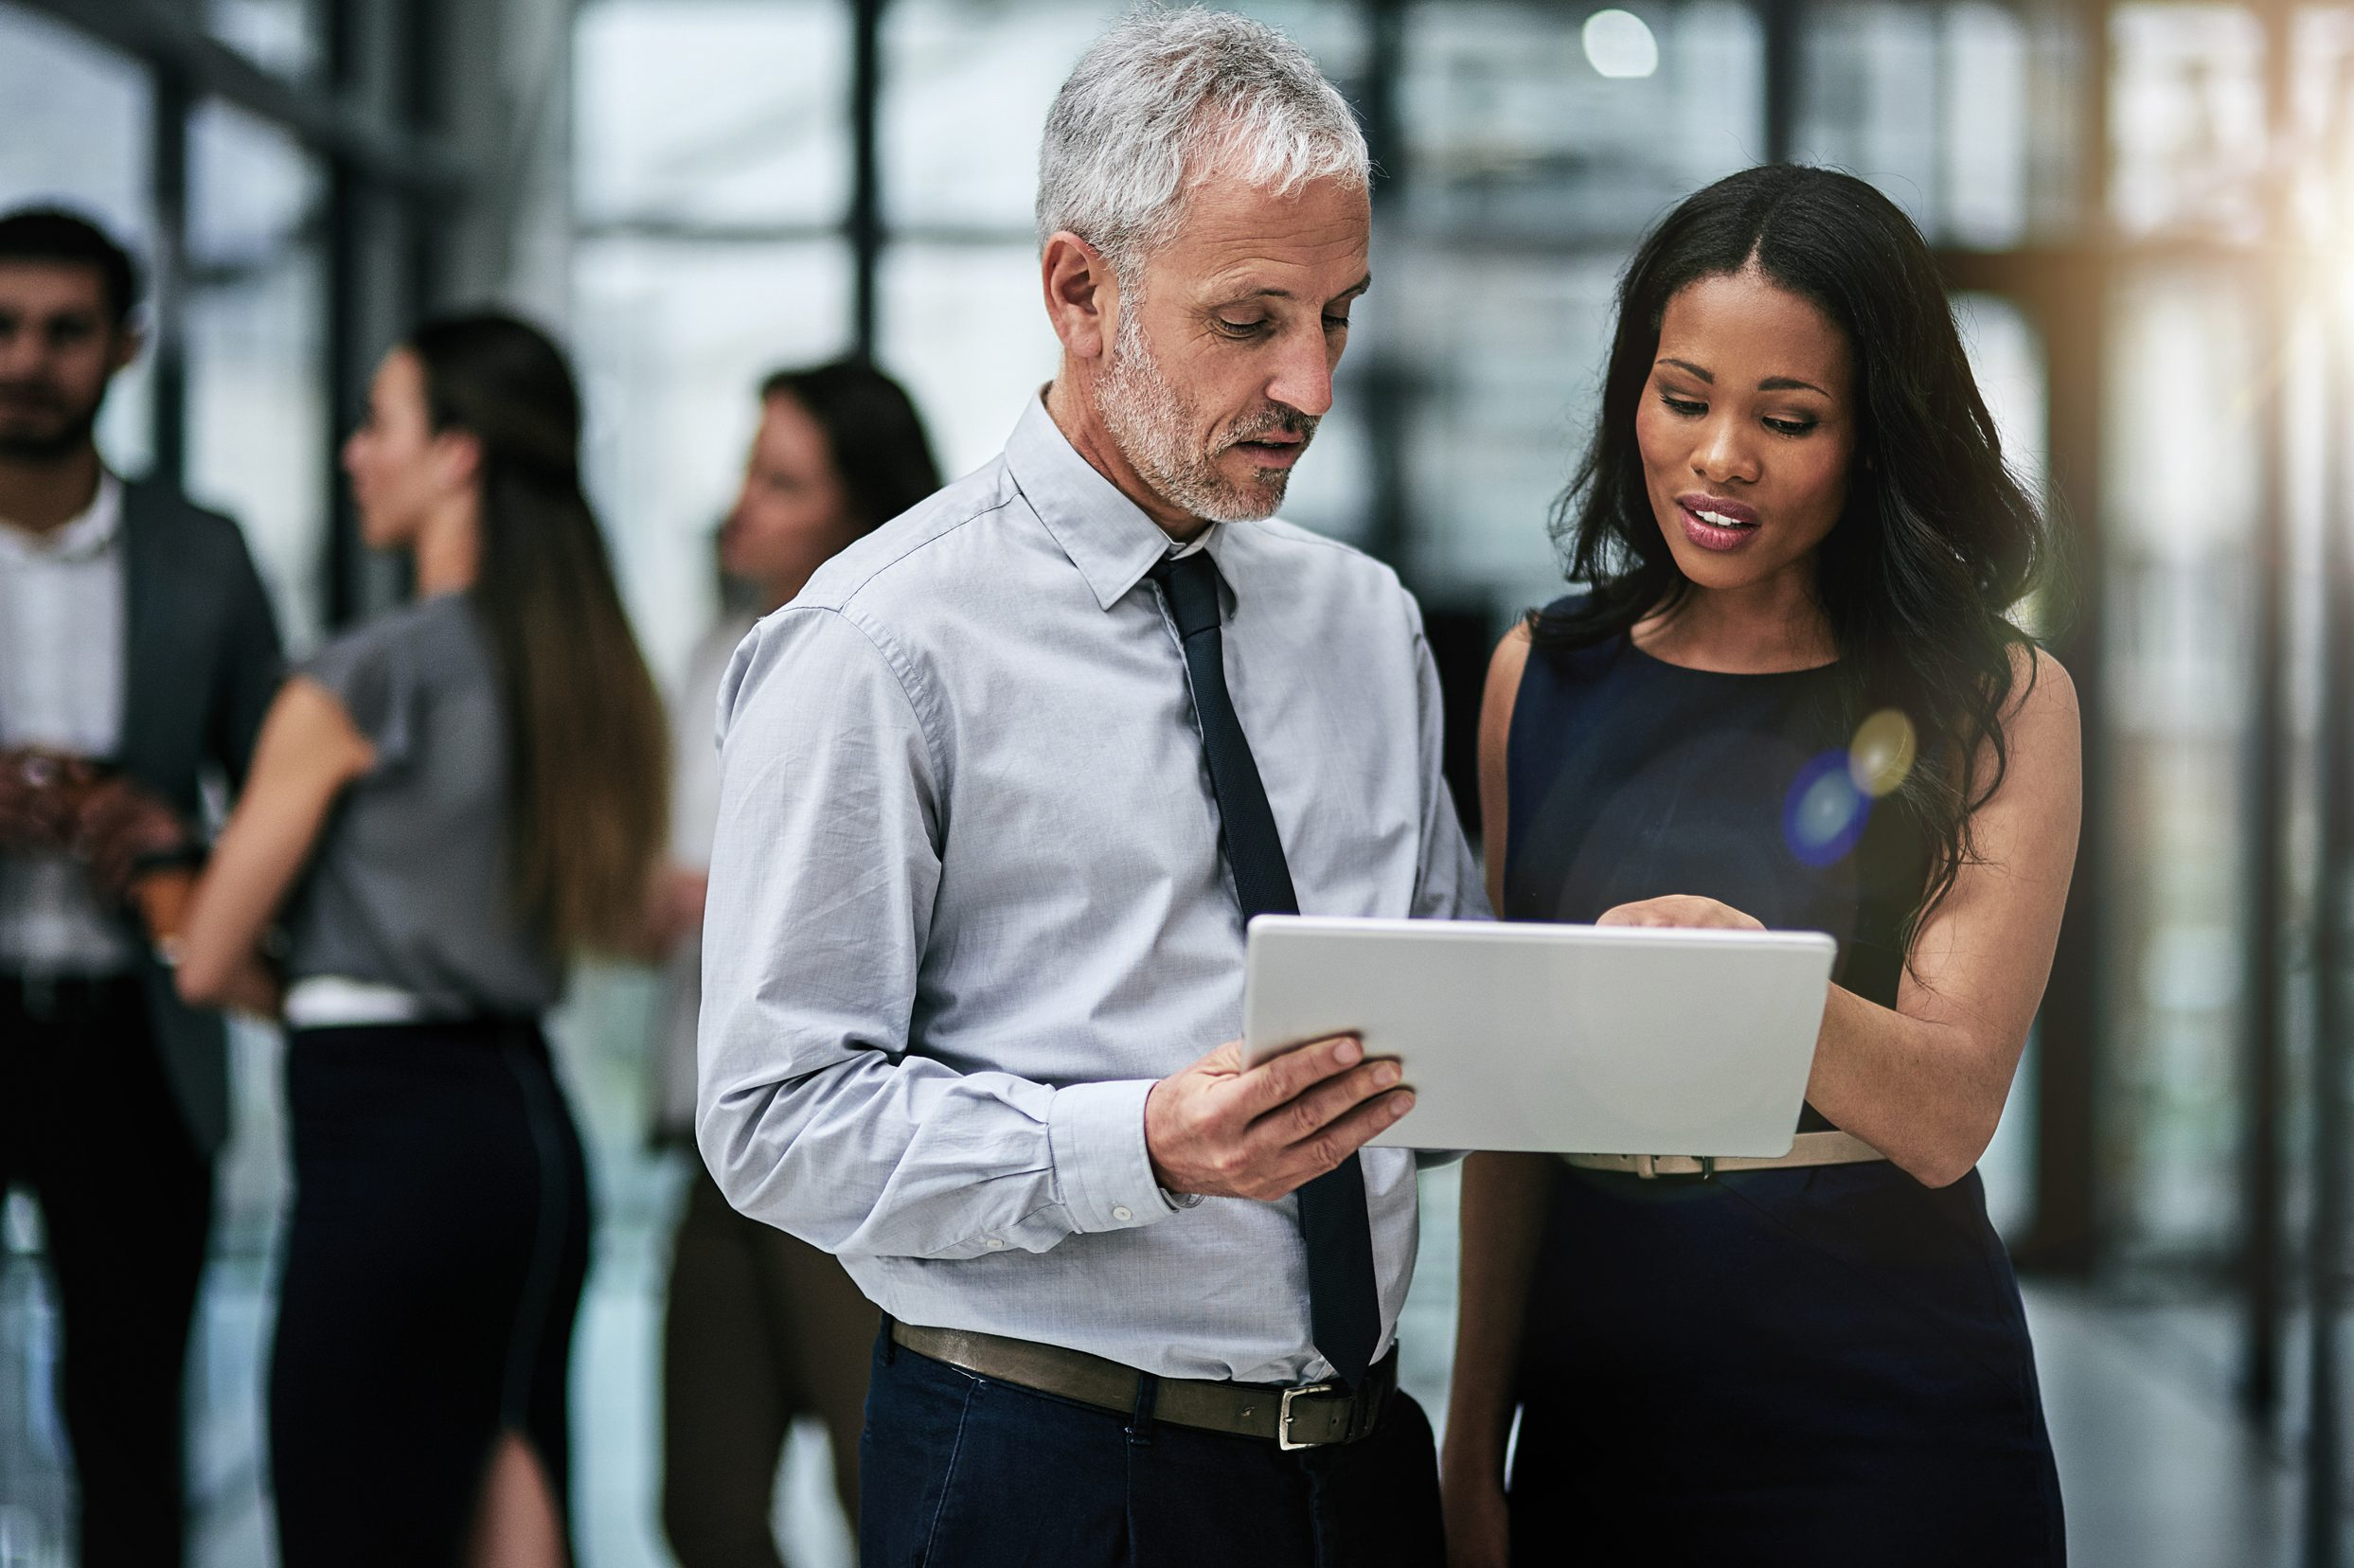 Two business people reviewing tablet